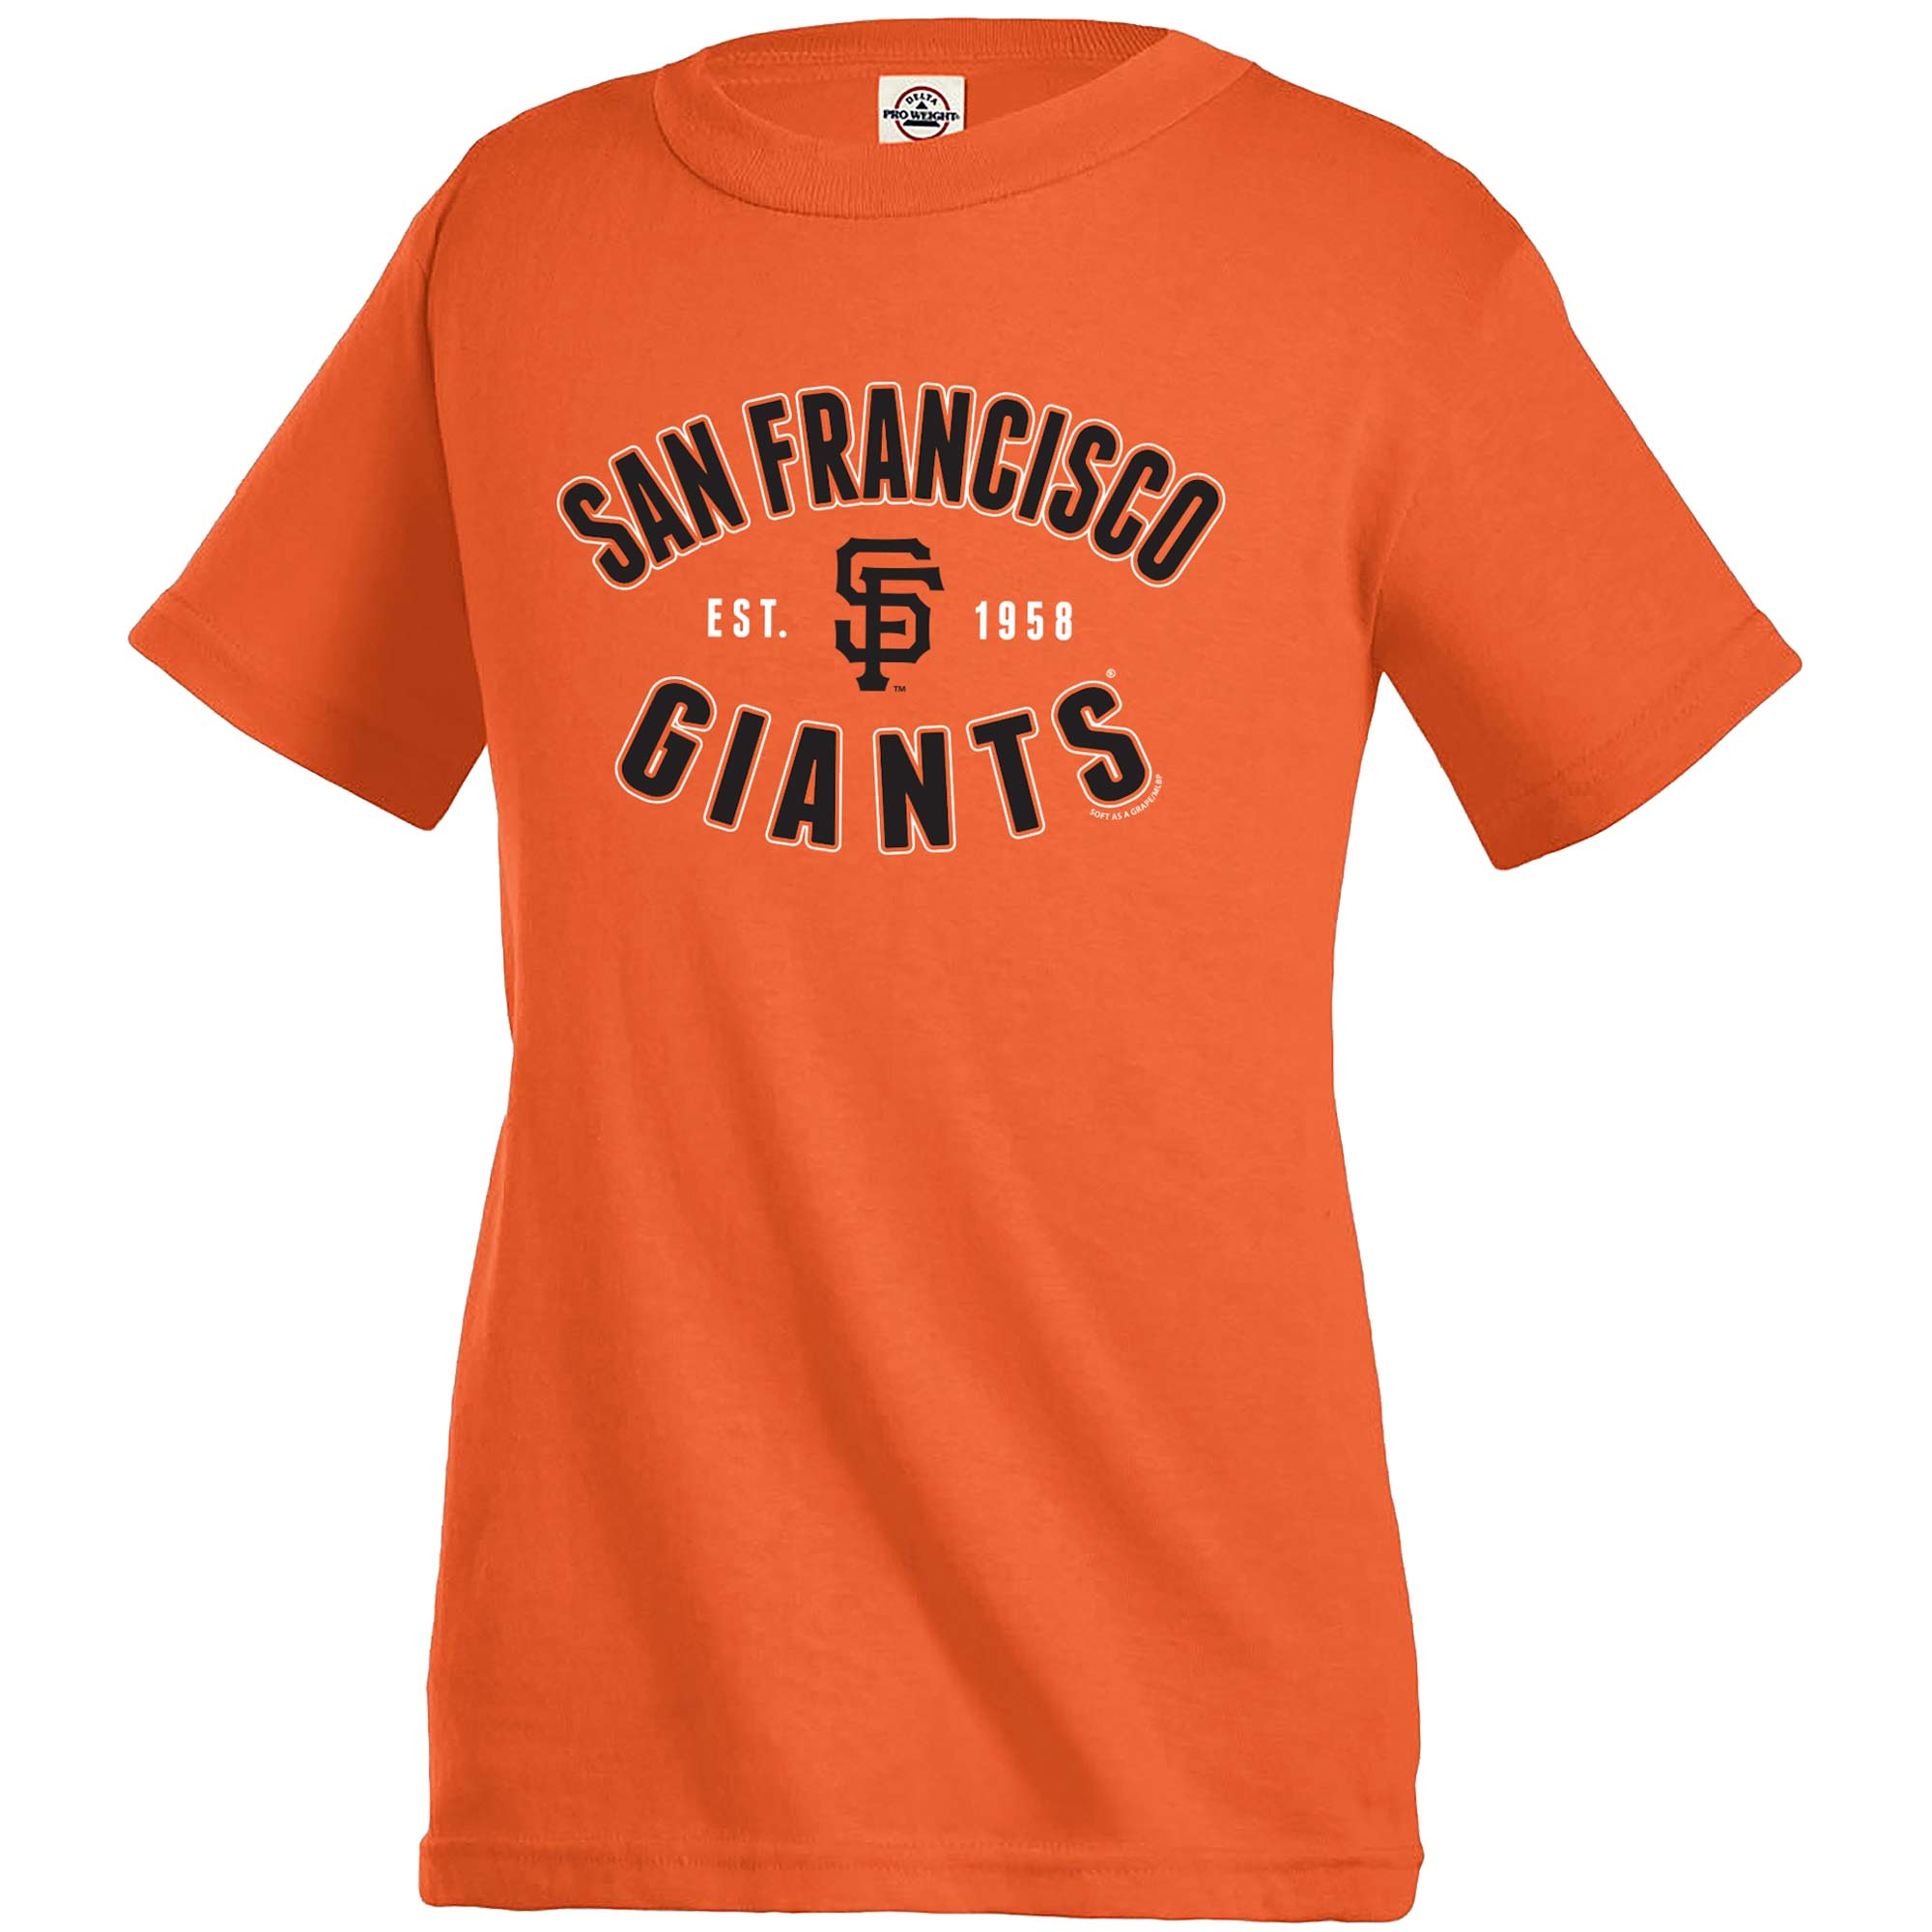 San Francisco Giants Soft as a Grape Youth Cotton Crew Neck T-Shirt - Orange